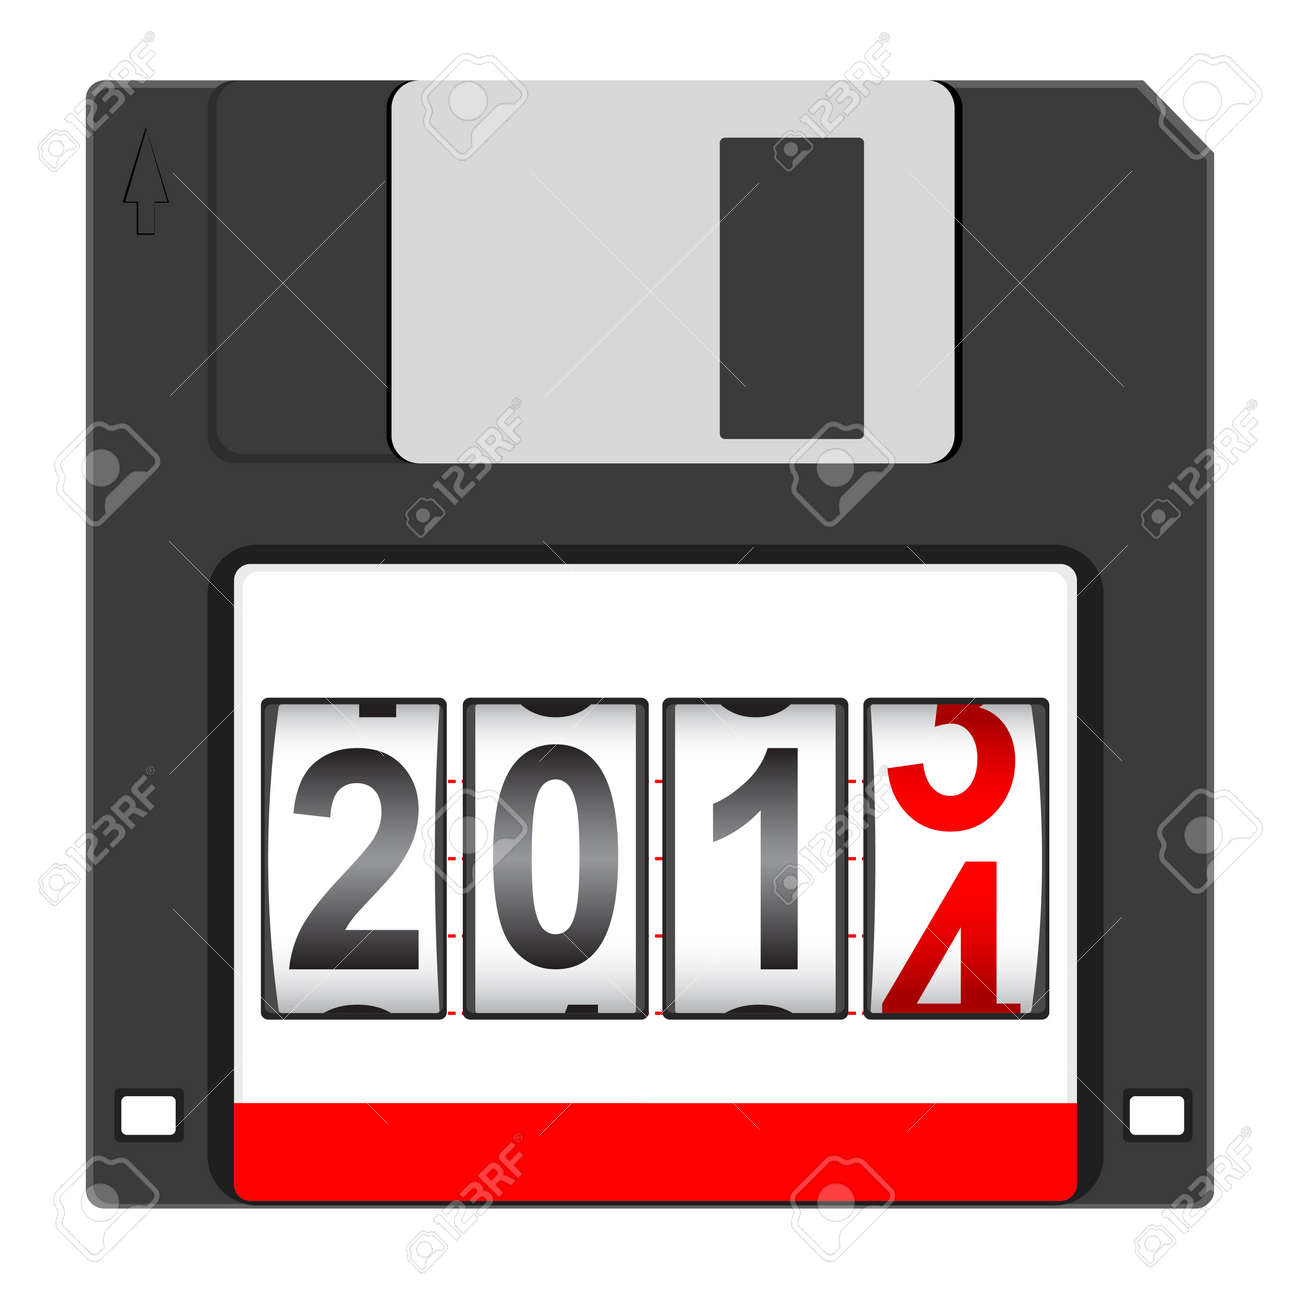 Old floppy disc for computer data storage with 2014 New Year counter isolated on white background Stock Vector - 18998028